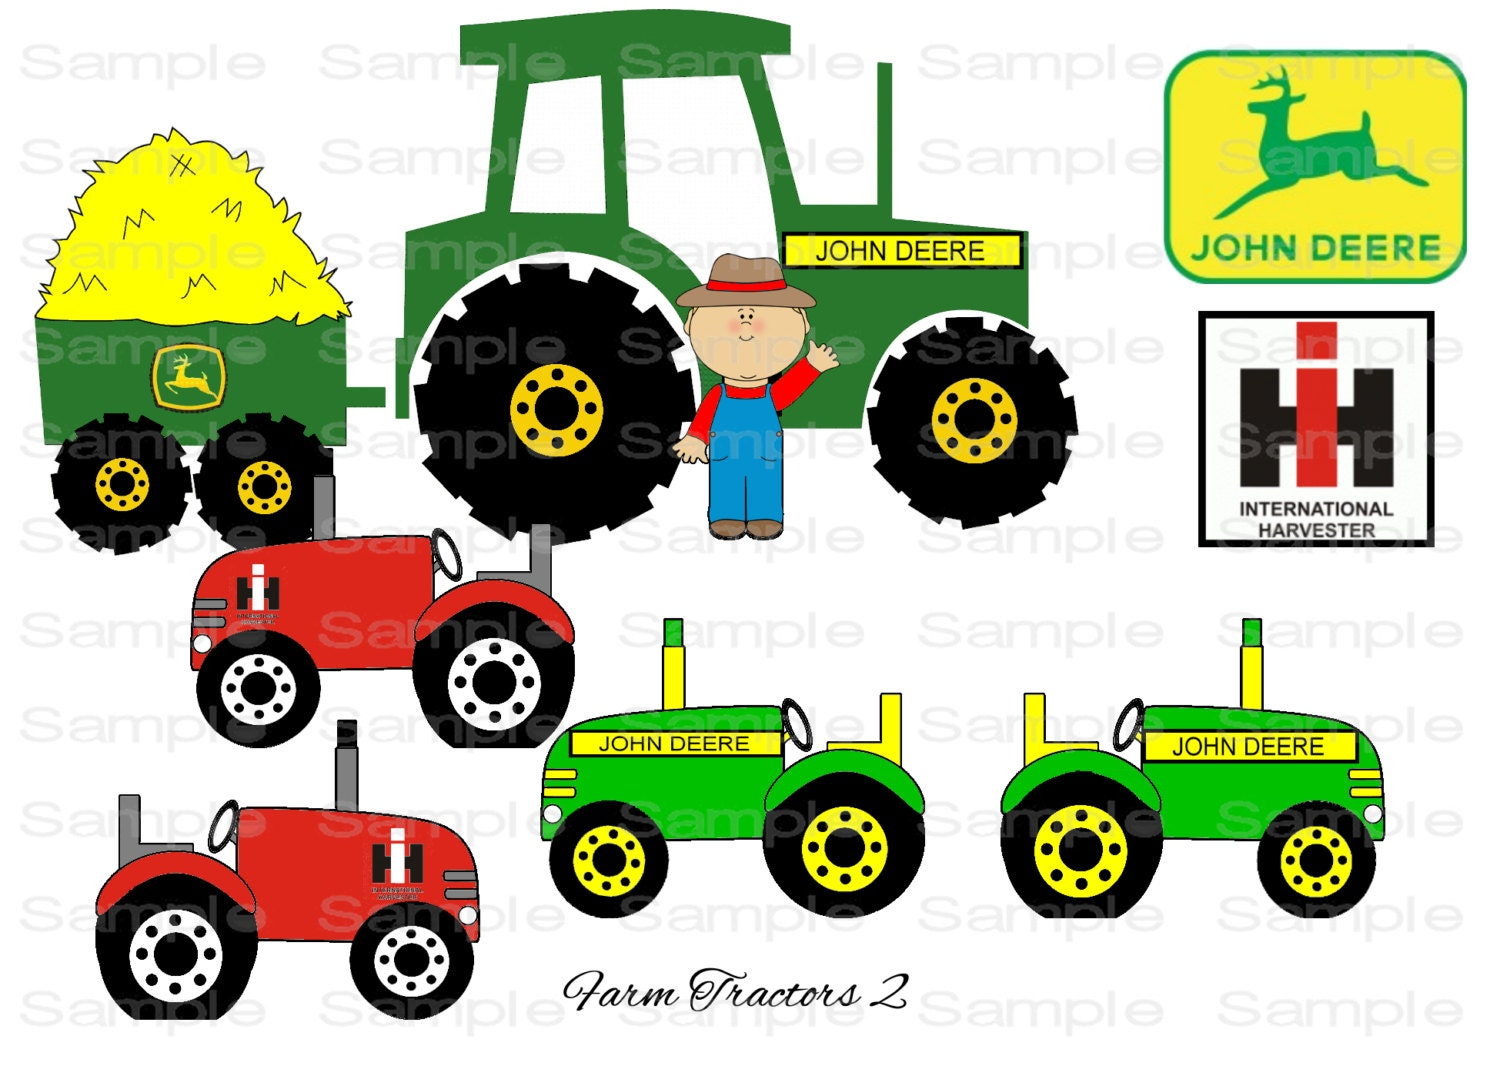 John Deere Tractor Invitations as awesome invitations design